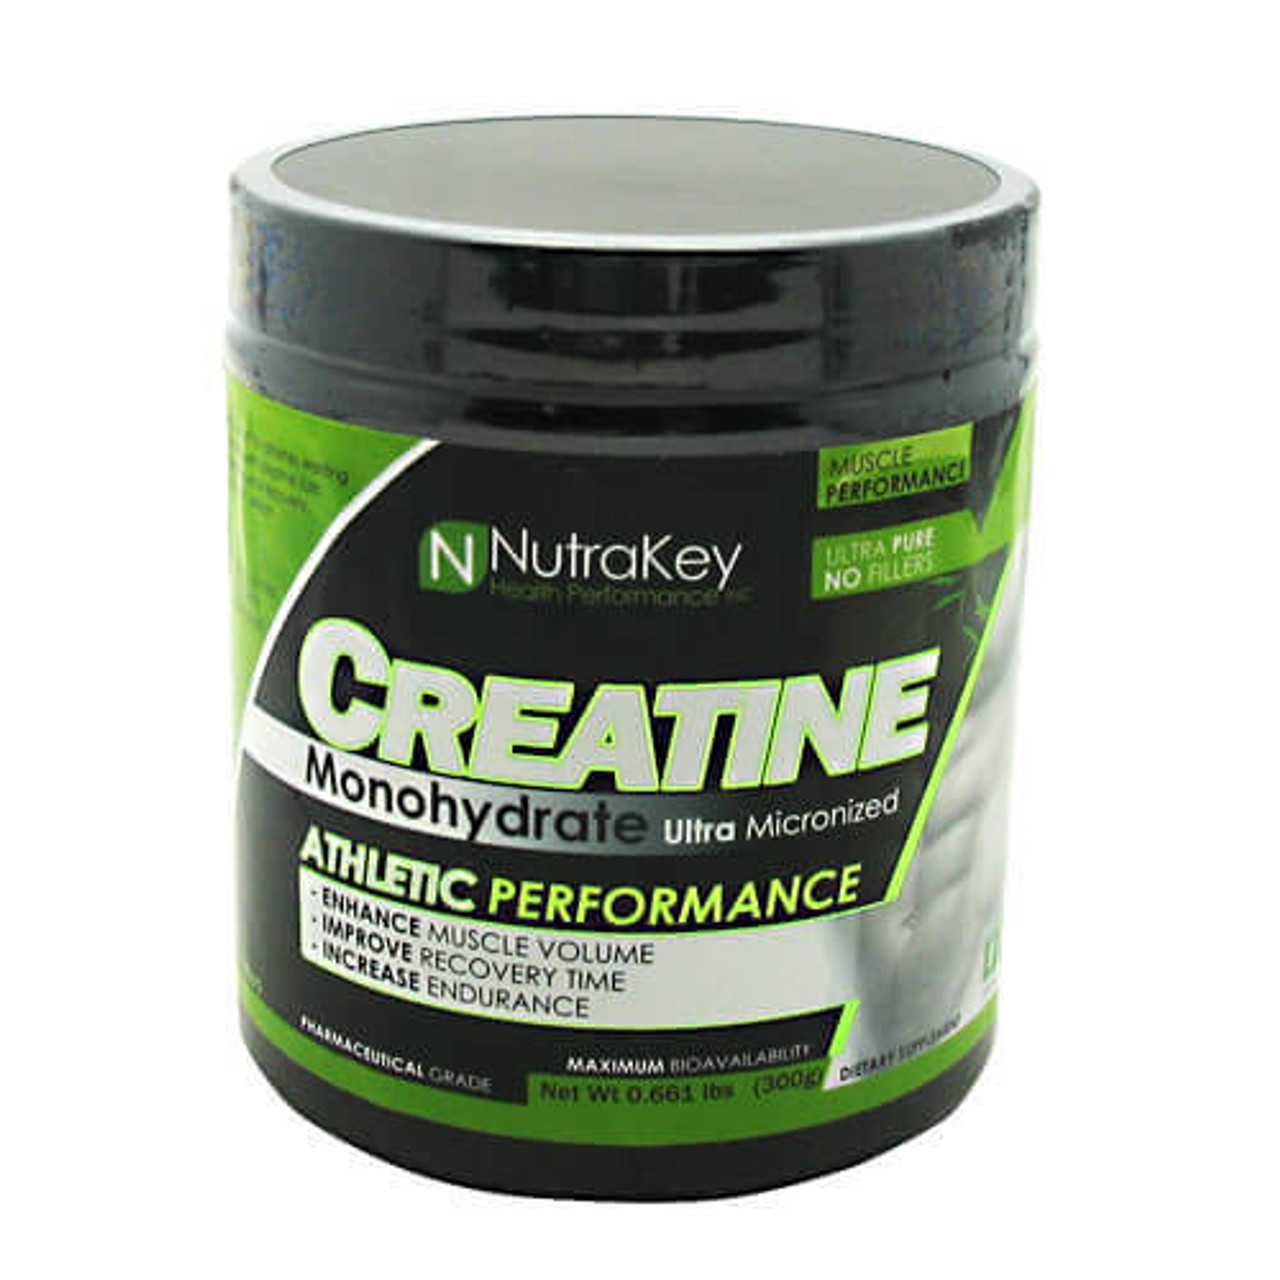 Creatine Monohydrate by NutraKey 300g